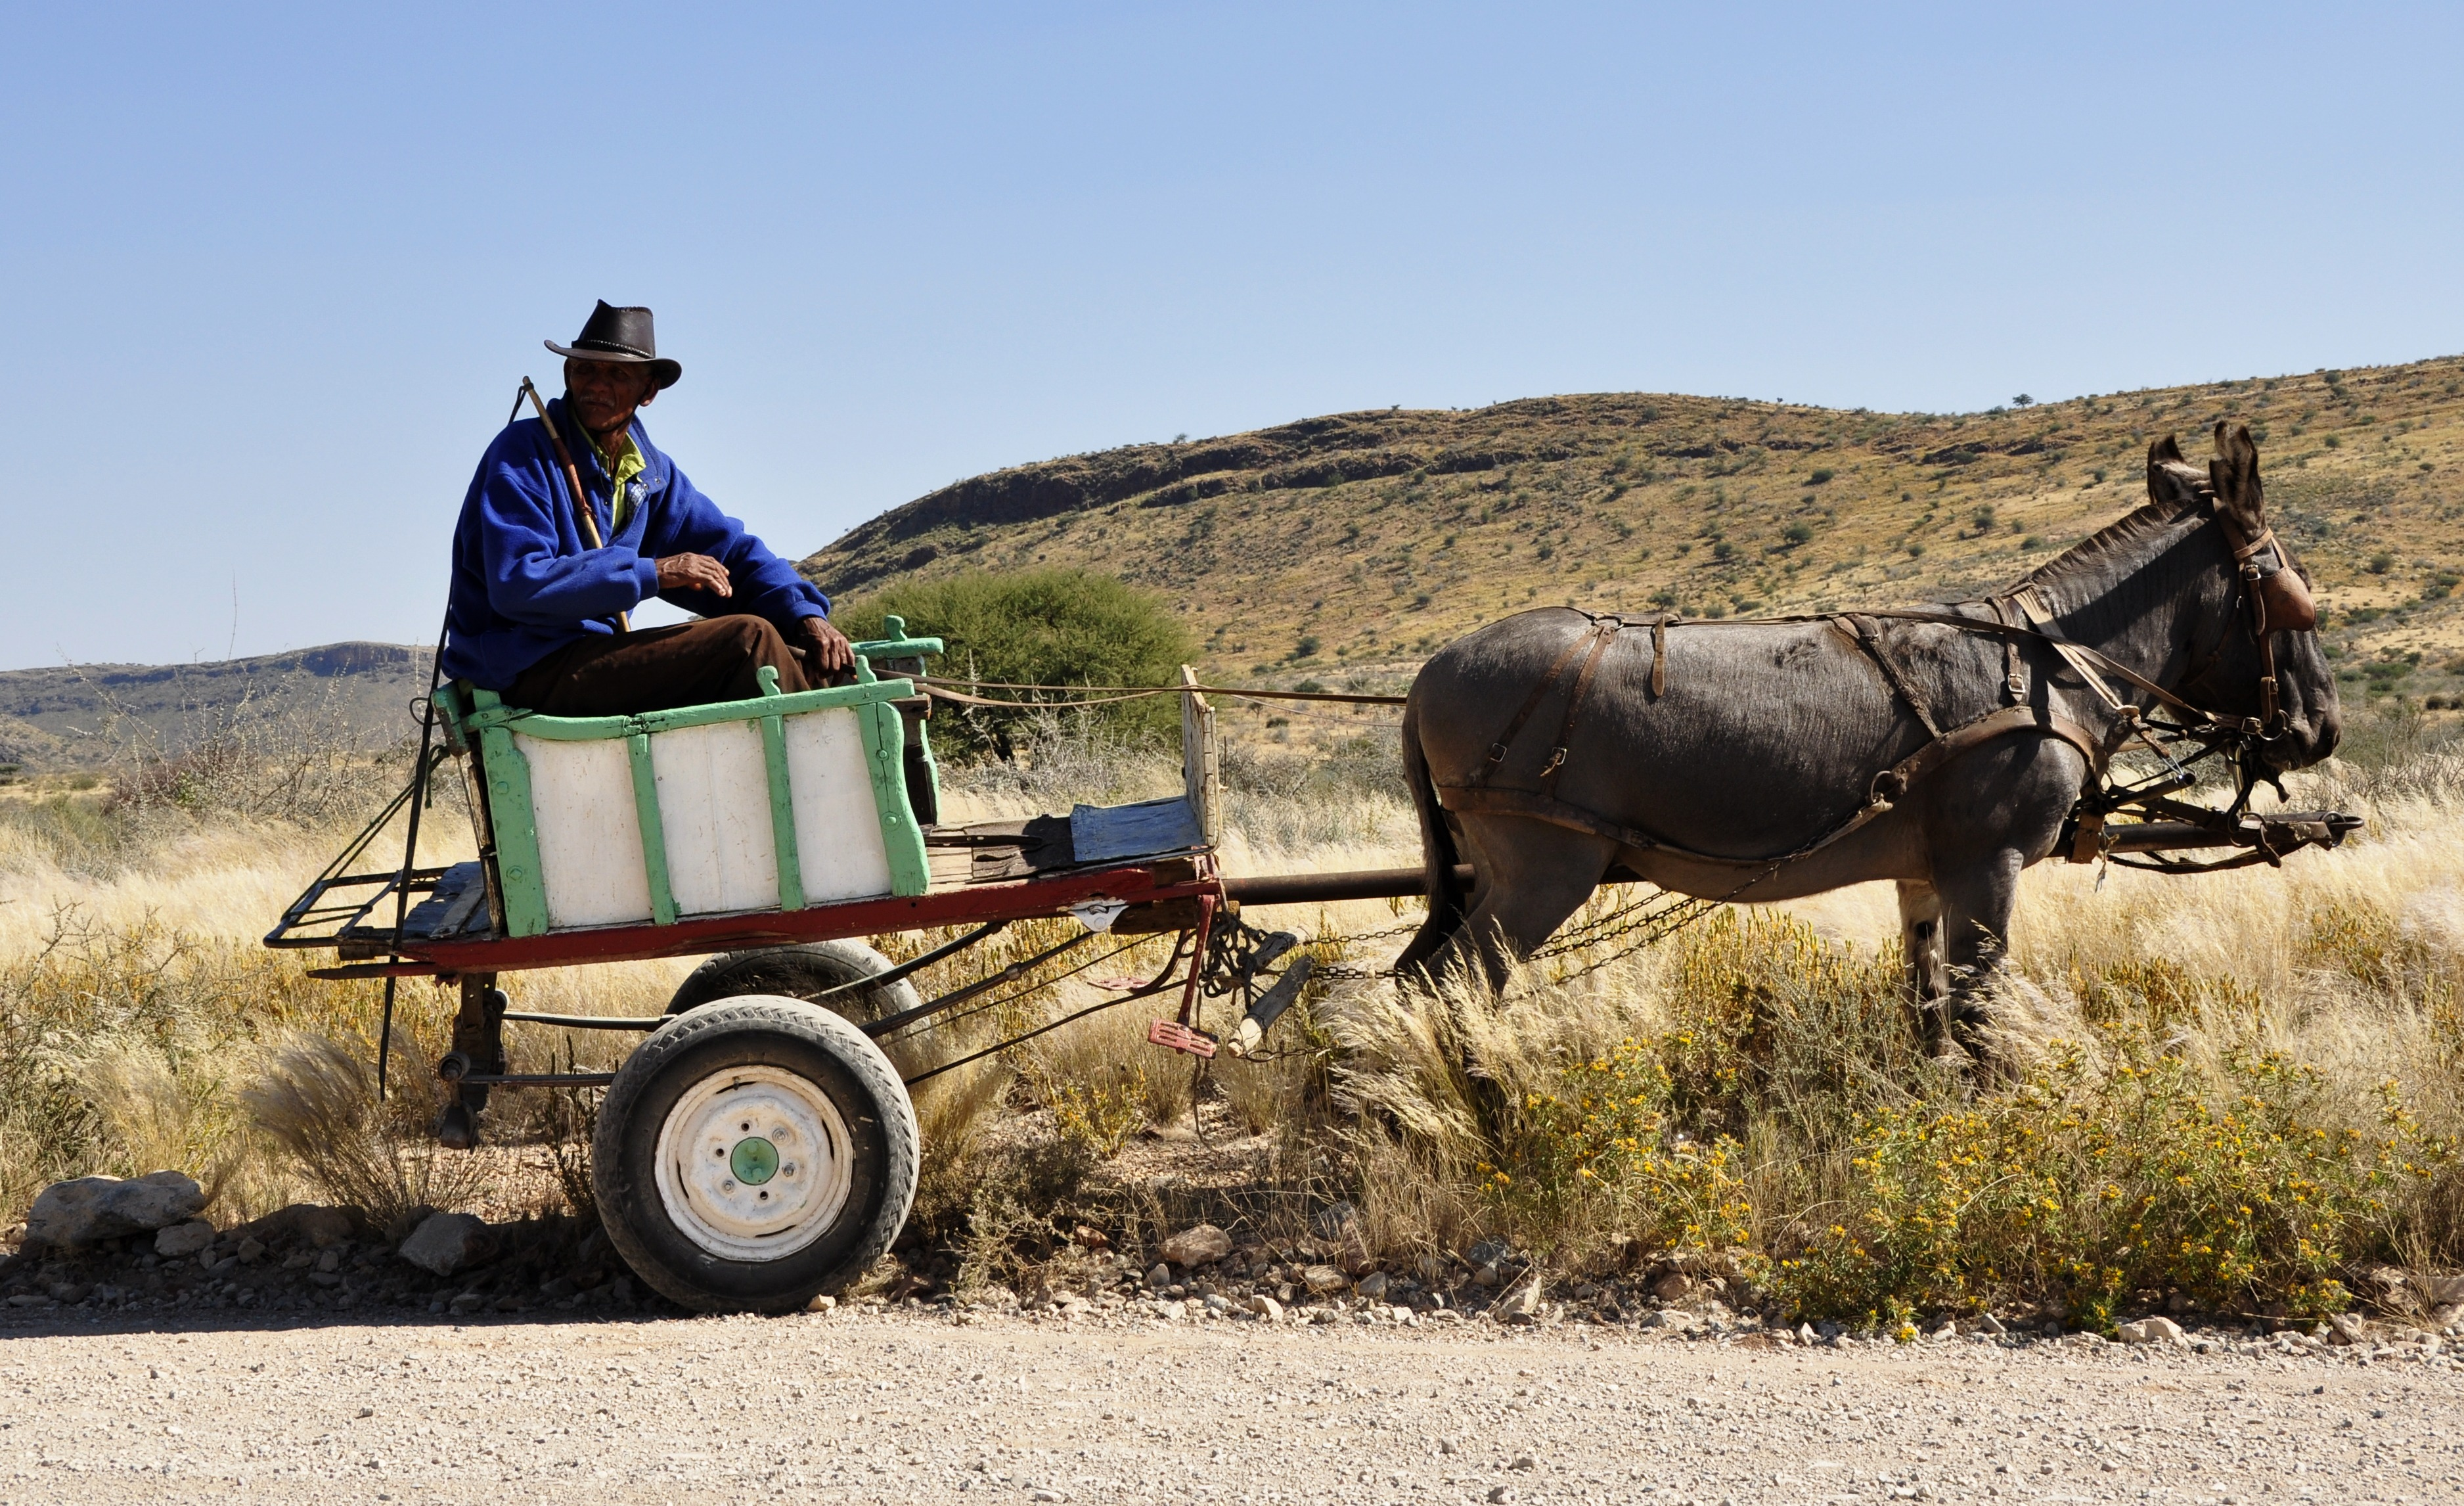 Data from a donkey cart